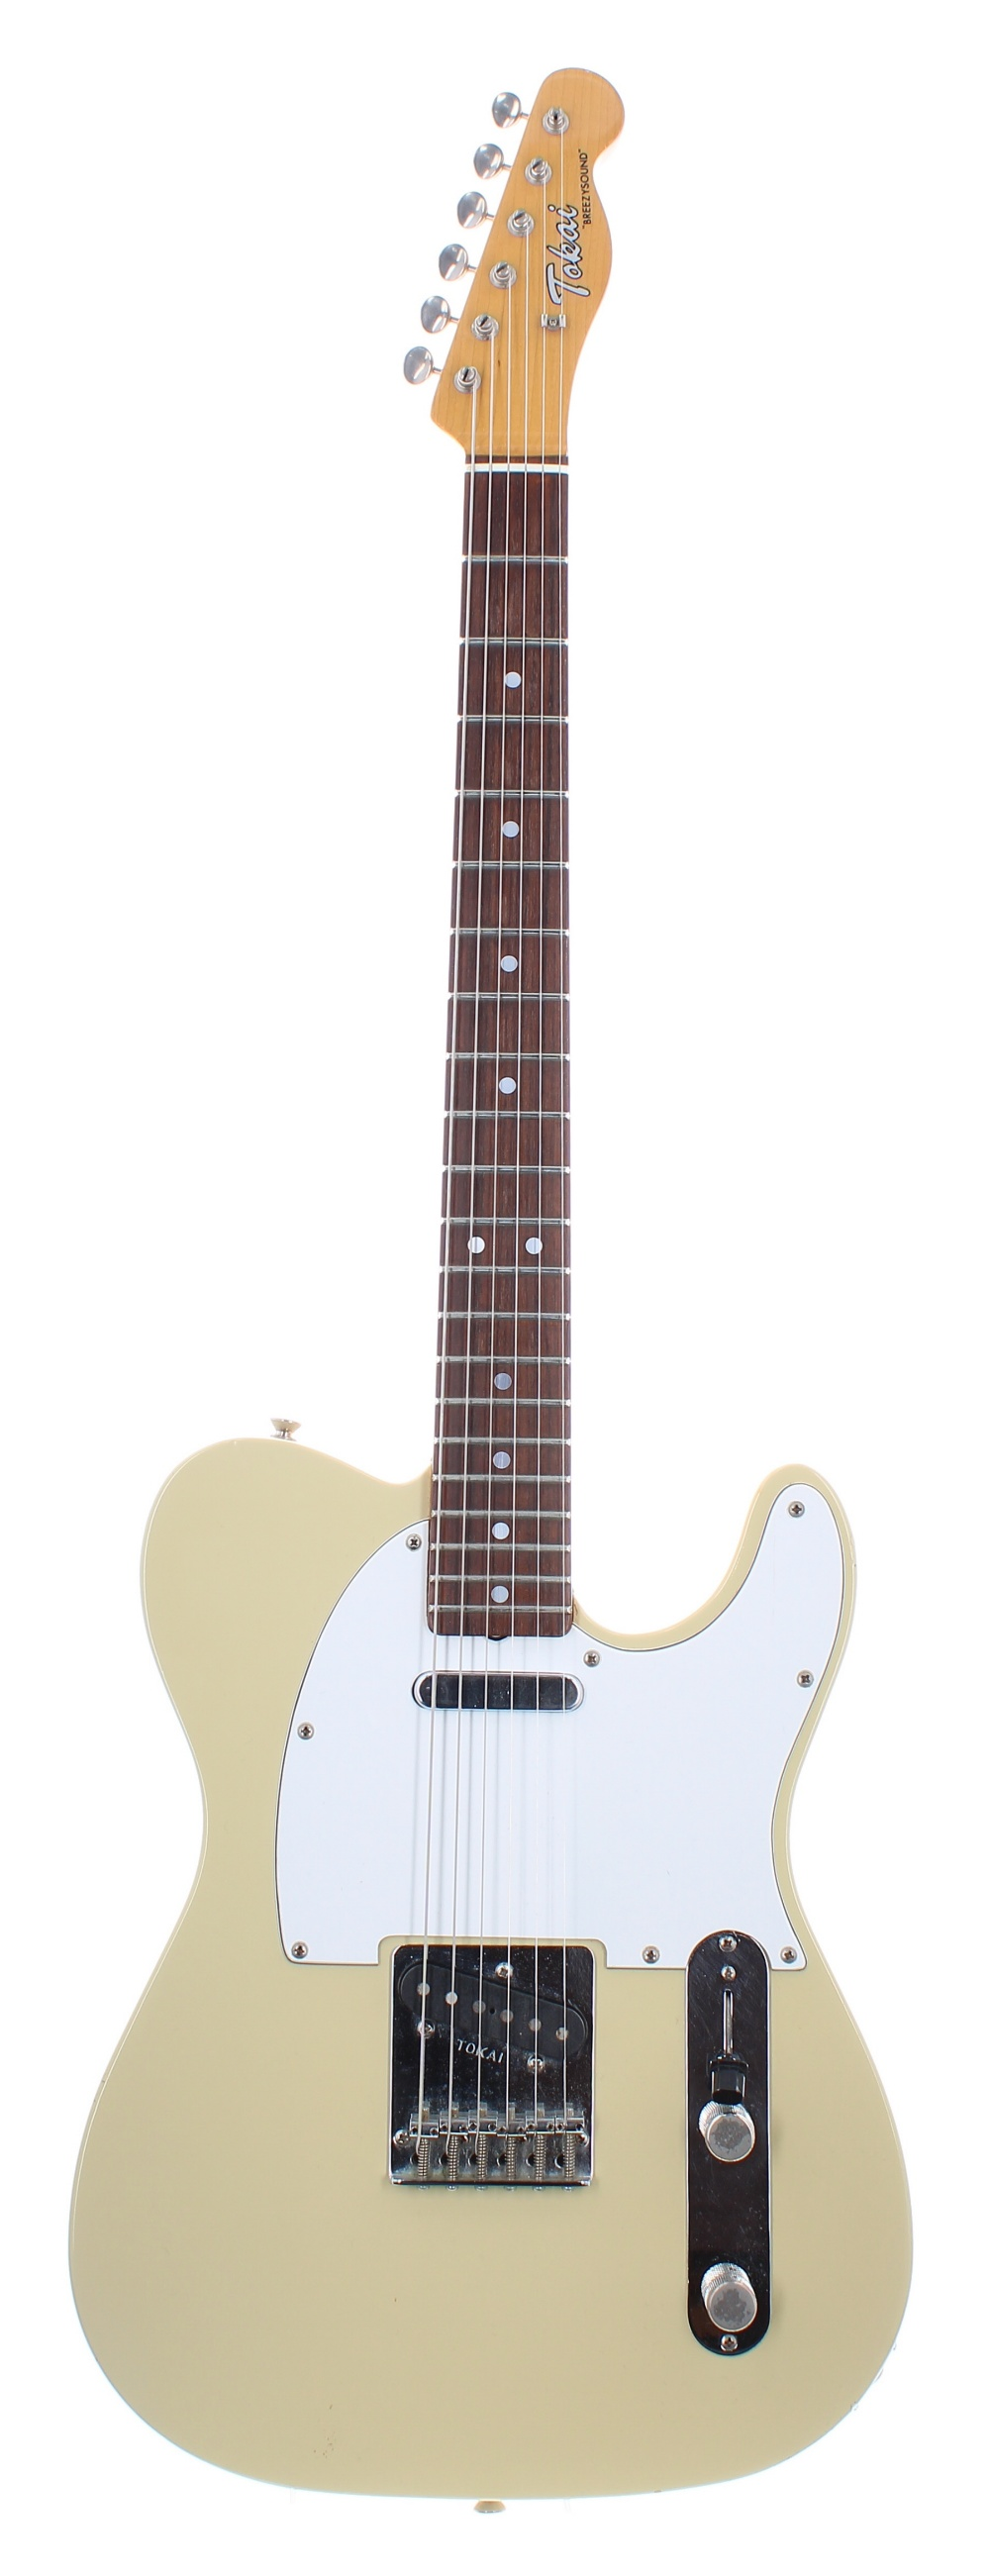 Mid 1980s Tokai Breezysound electric guitar, made in Japan, ser. no. 2xxxx7; Finish: ivory,